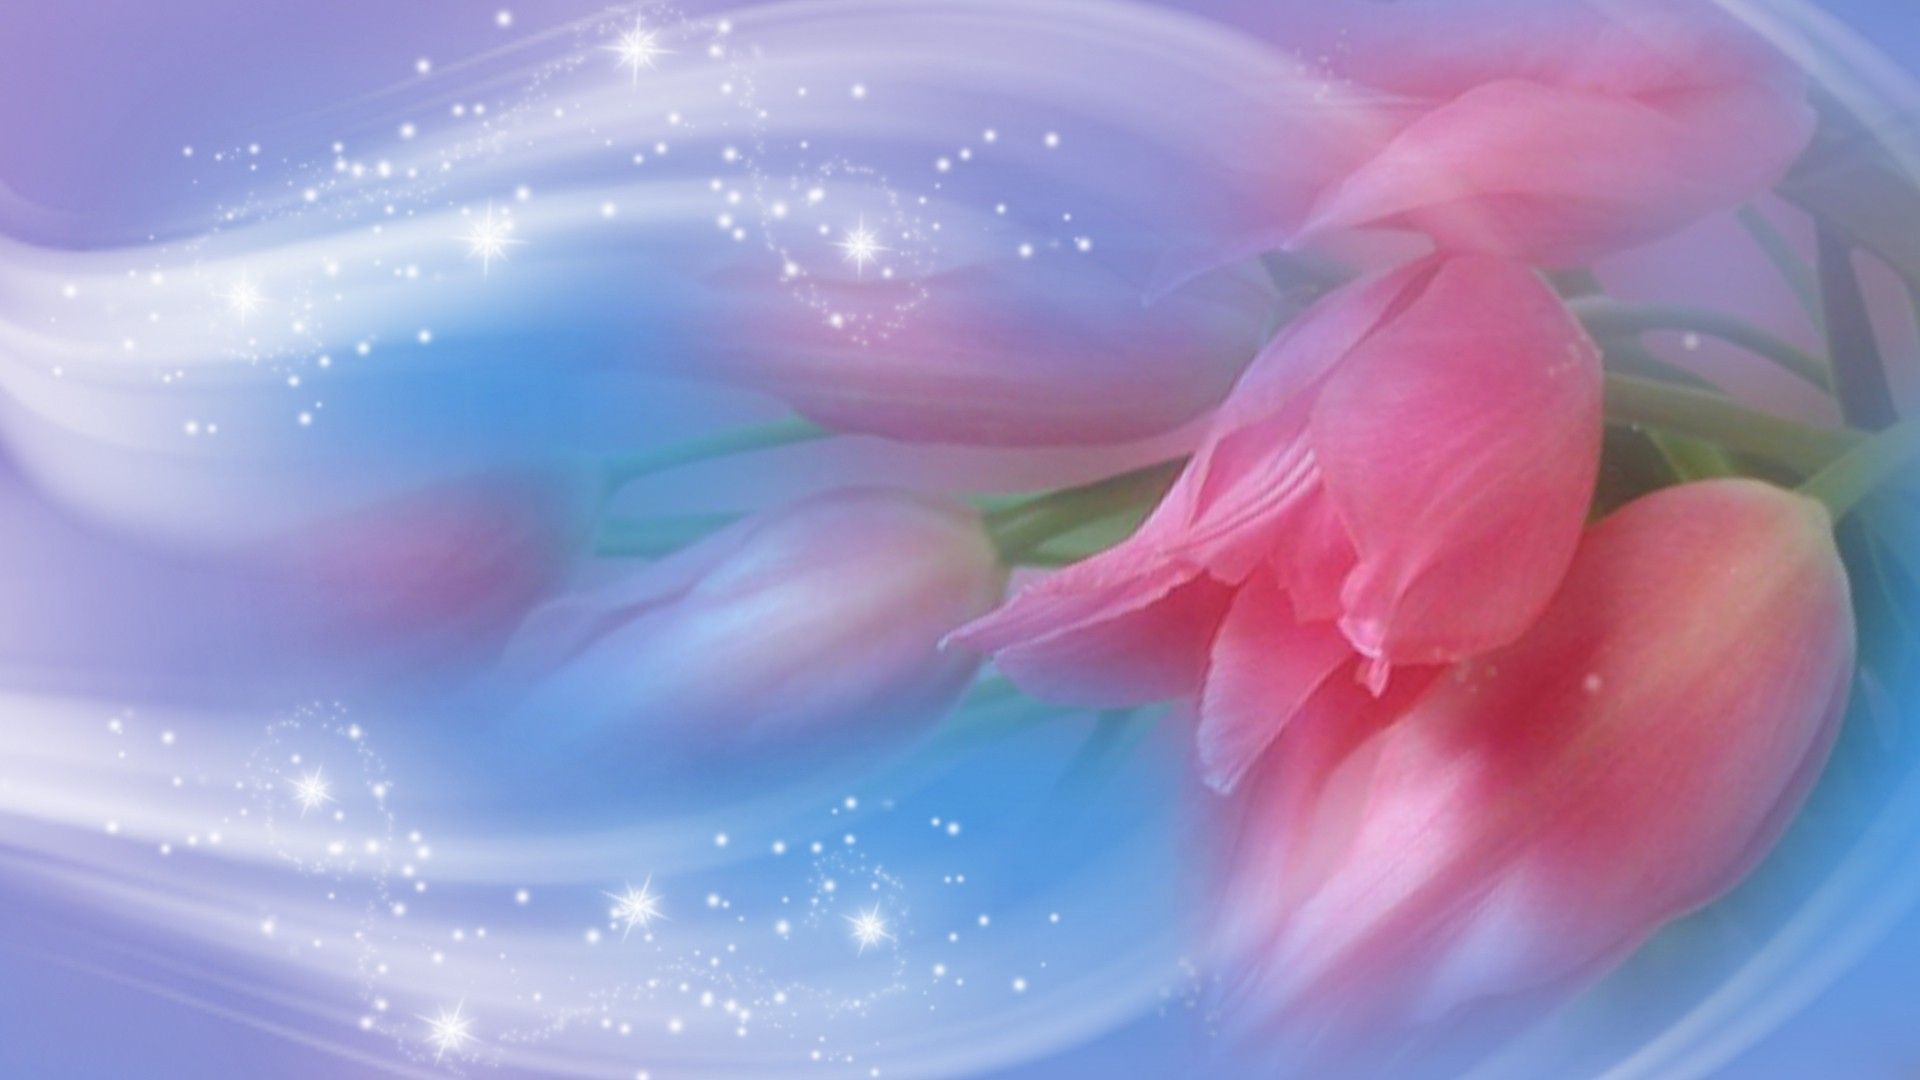 #AA4455 Color – Pink Romantic Flower Cute Pretty Blue Wallpapers High  Resolution for HD 16